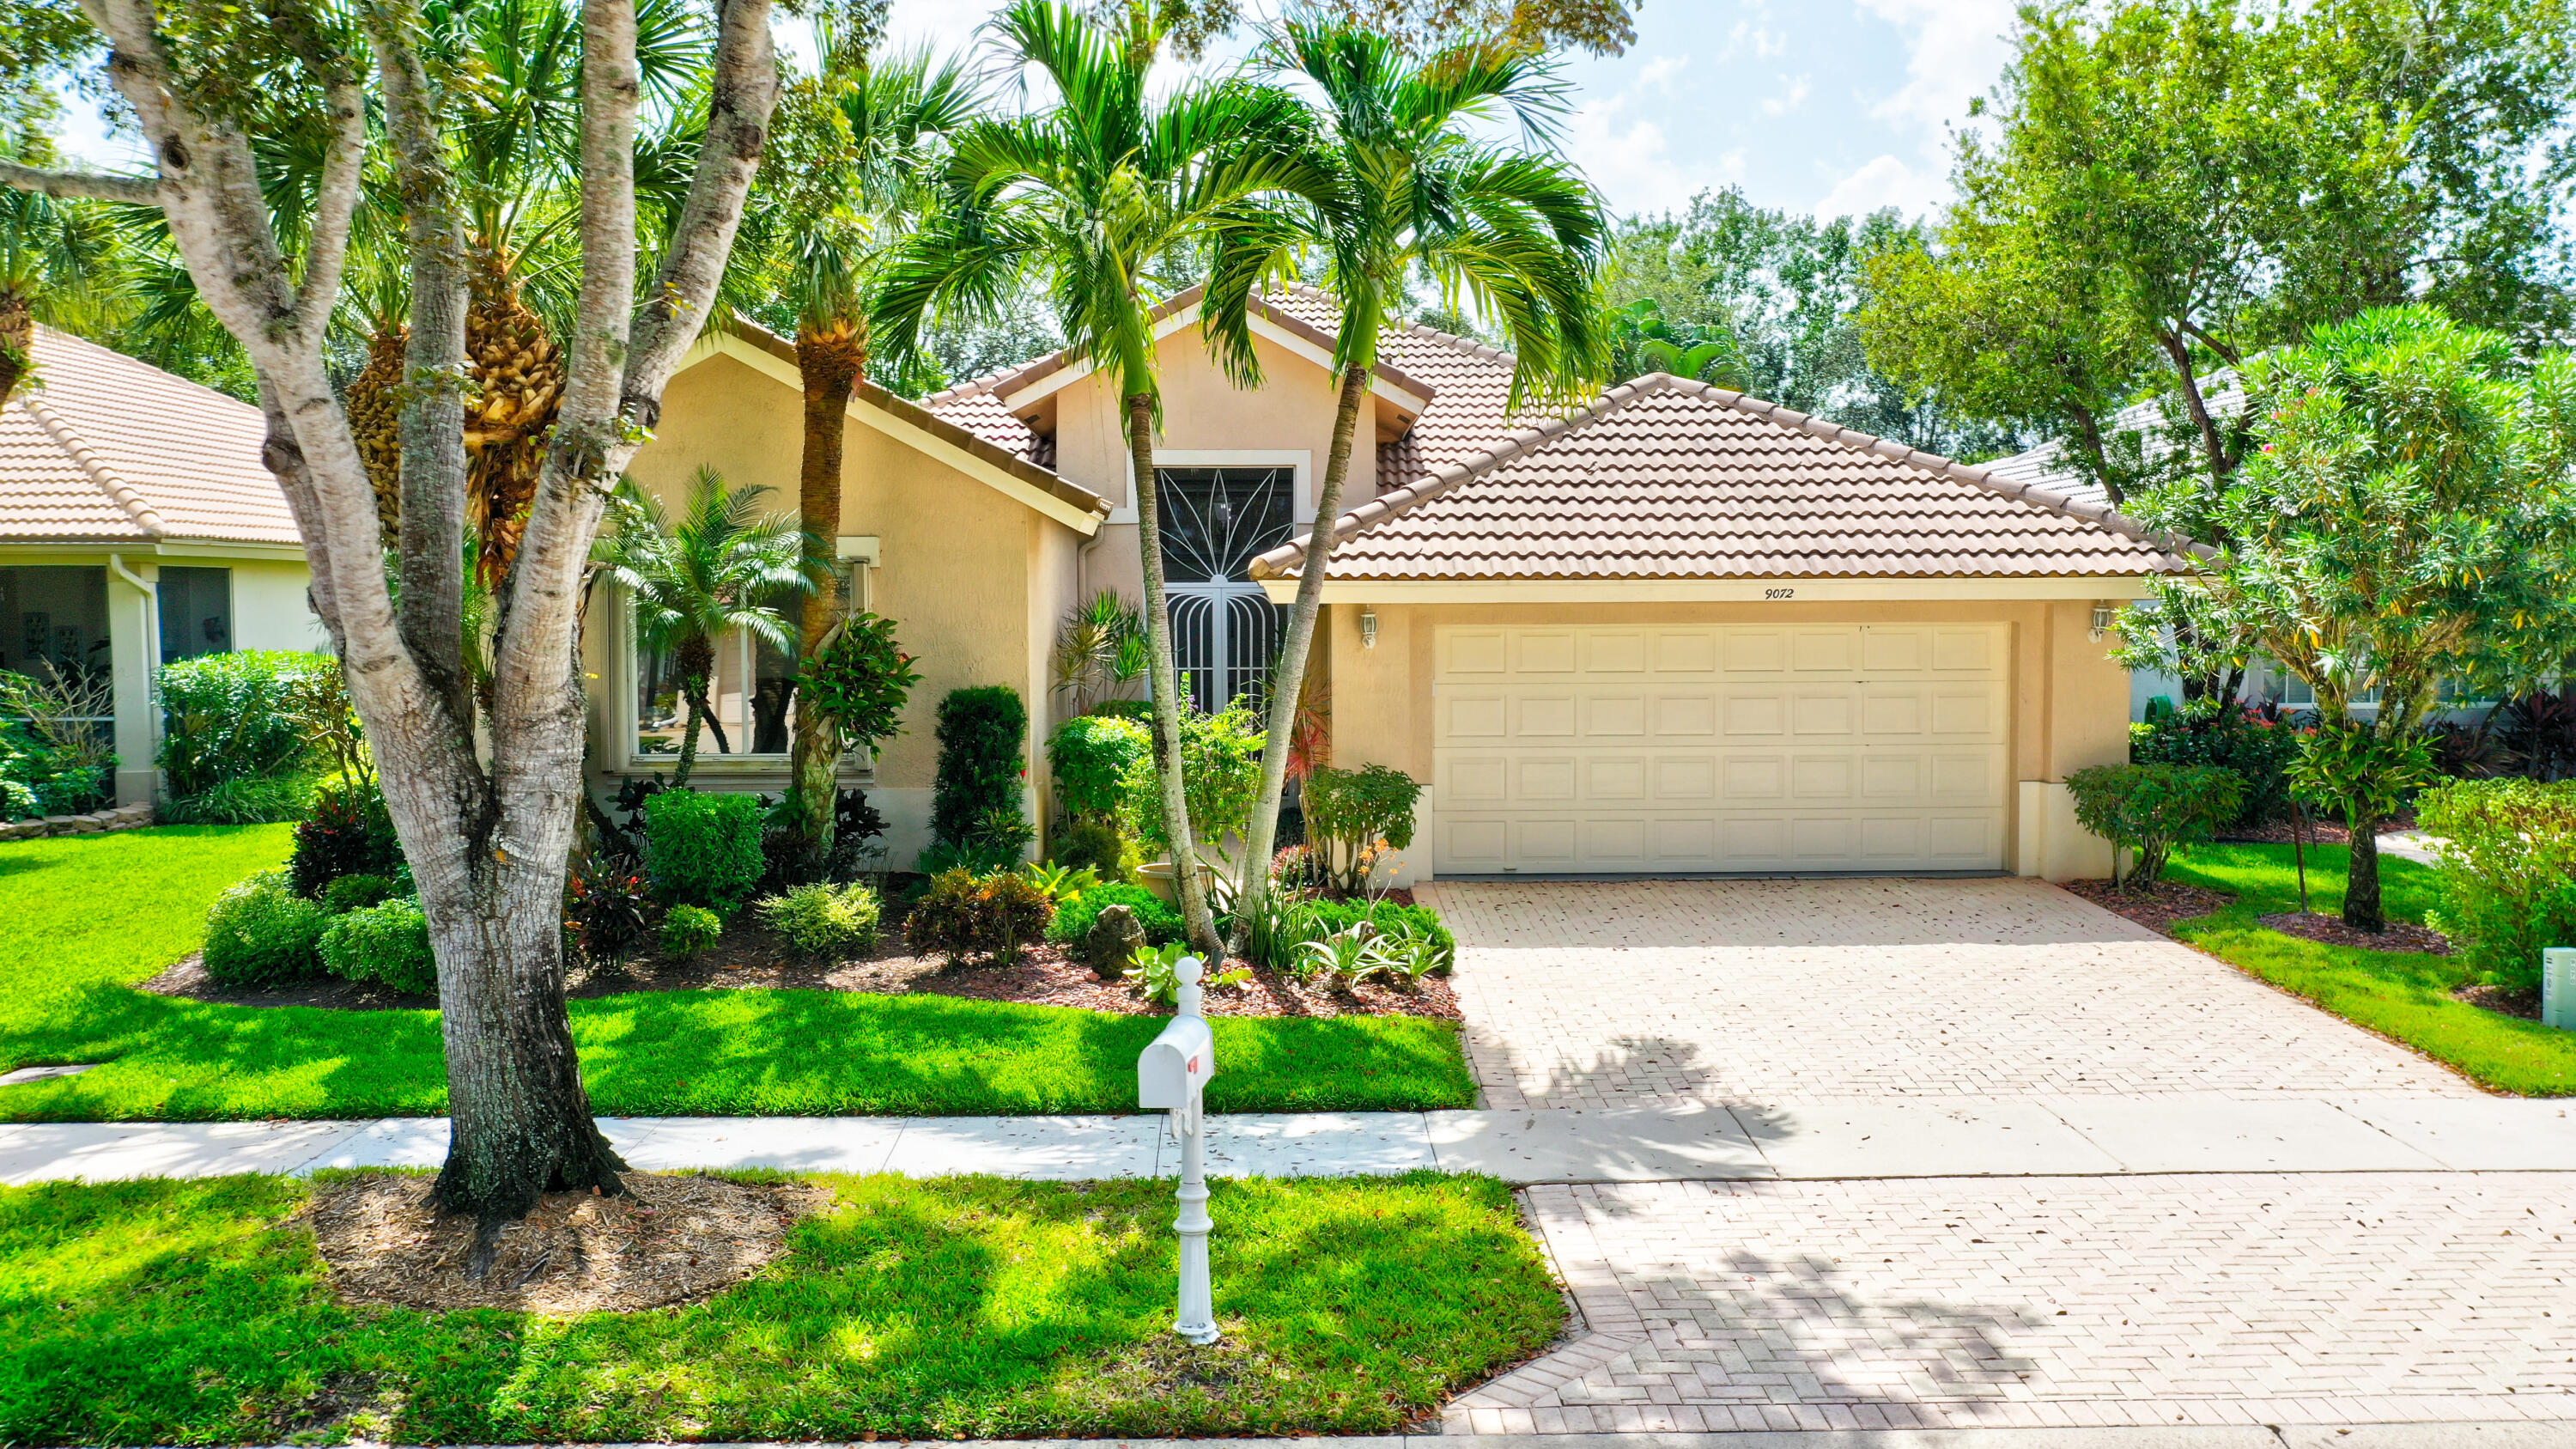 9072  Bay Harbour Circle  For Sale 10750177, FL